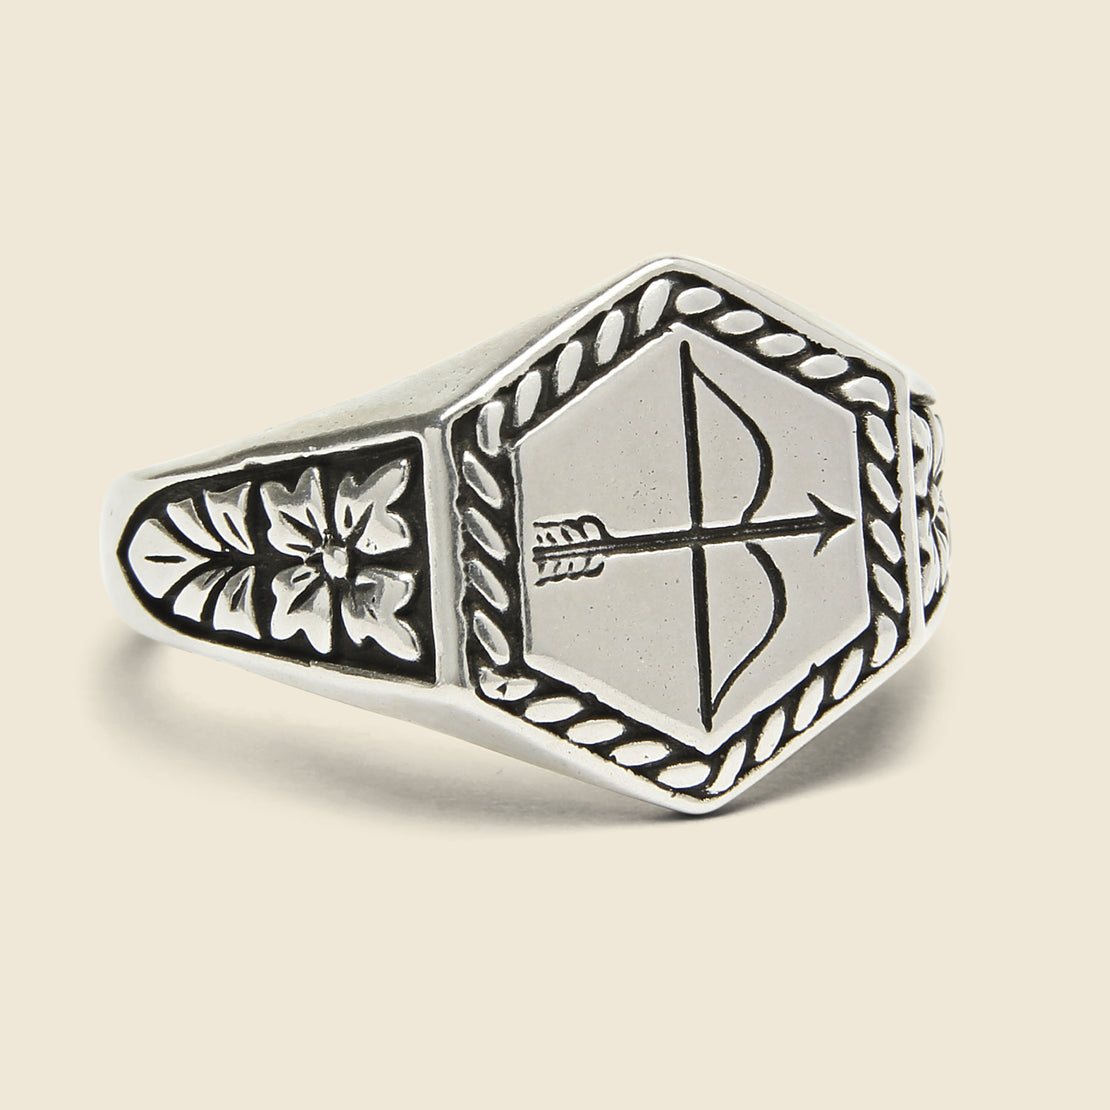 LHN Jewelry Bow & Arrow Ring - Silver